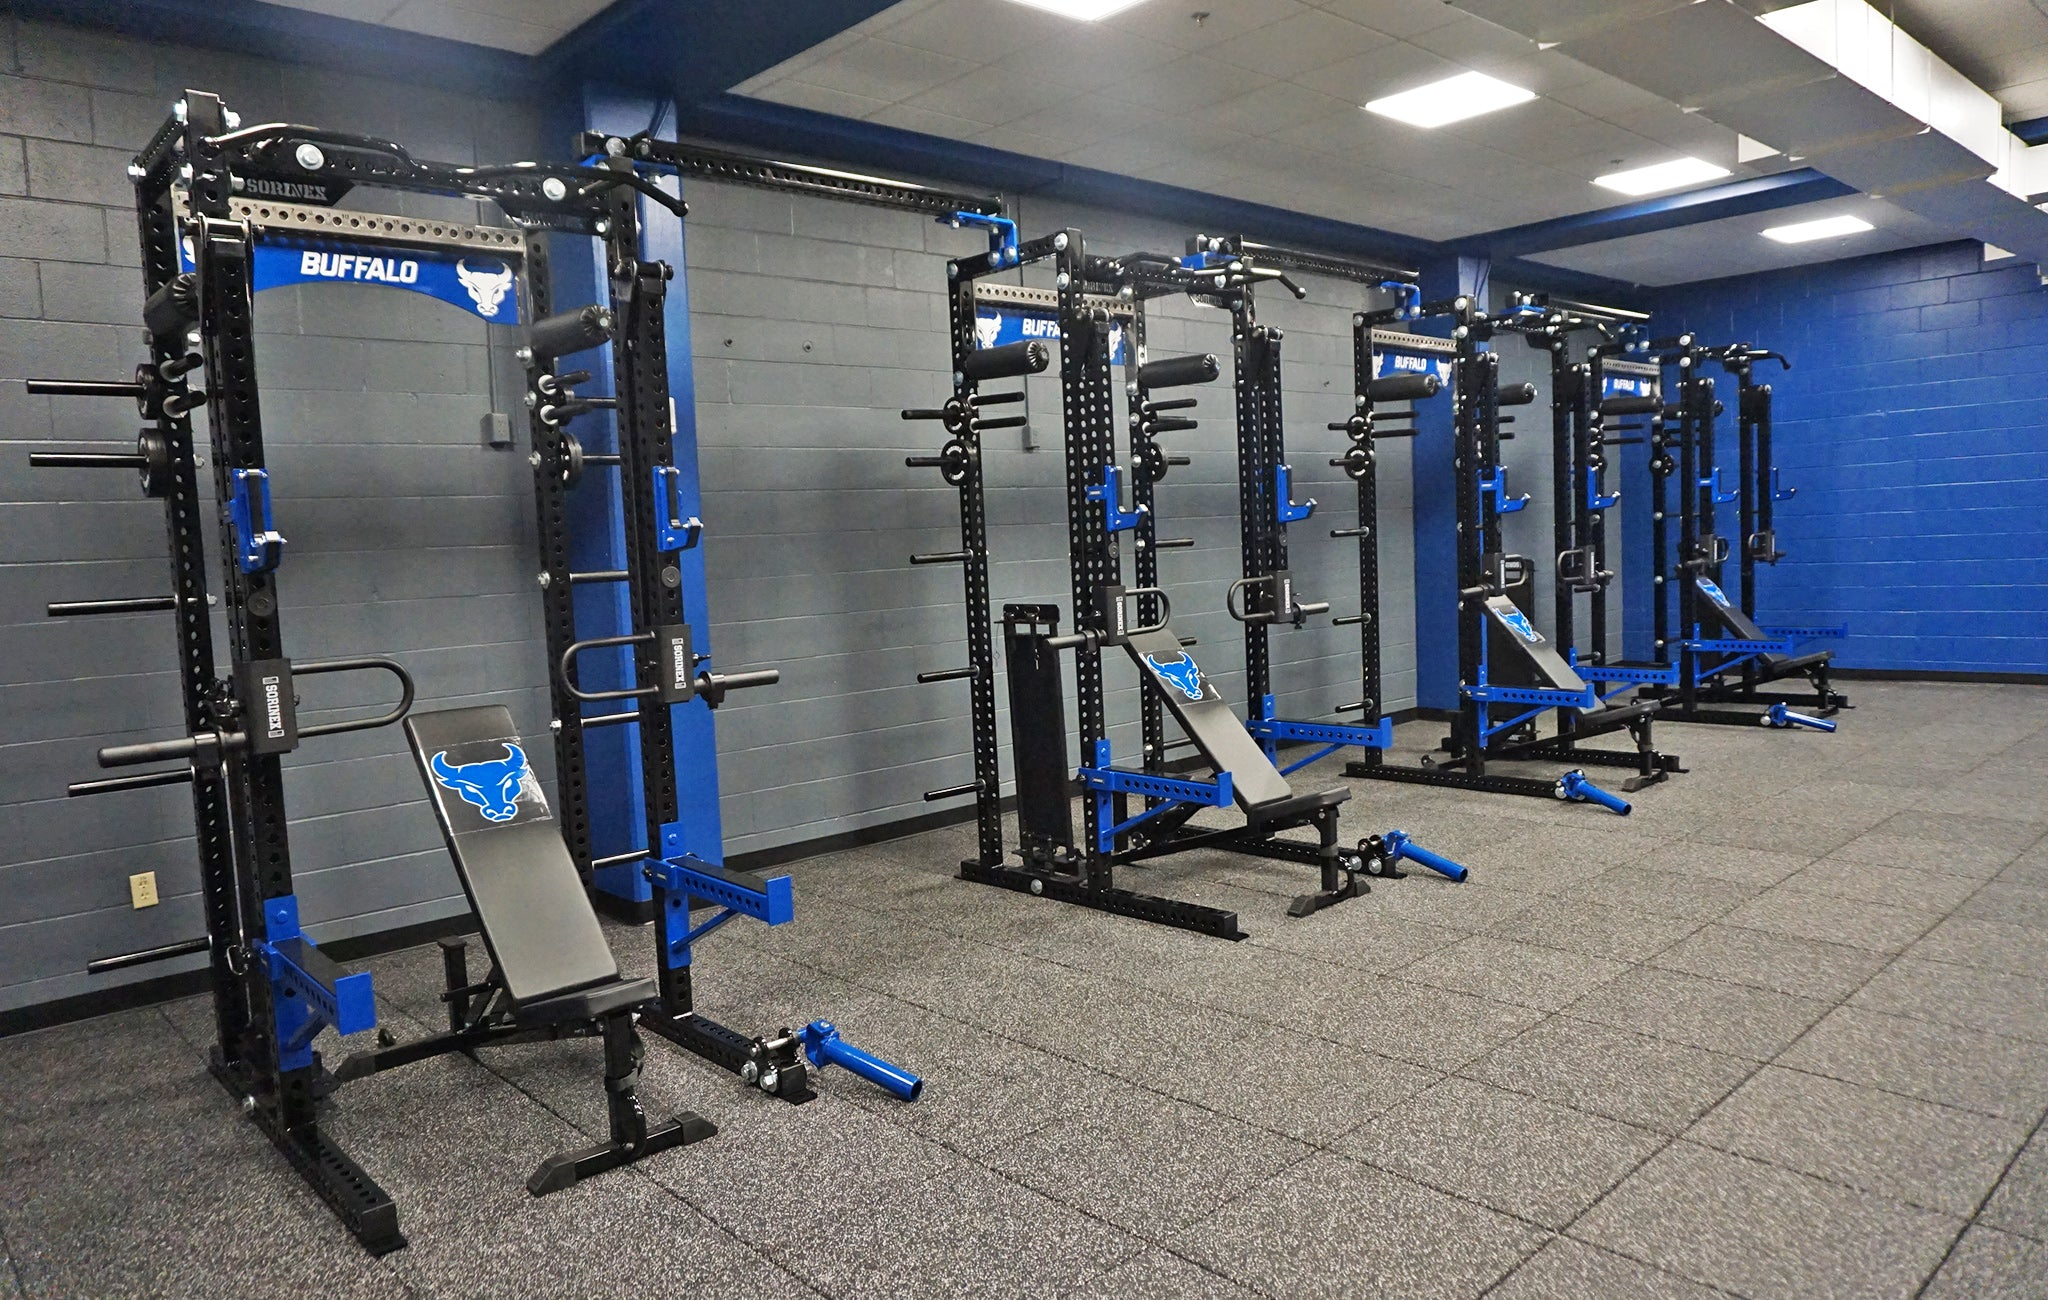 University of Buffalo Weight Room